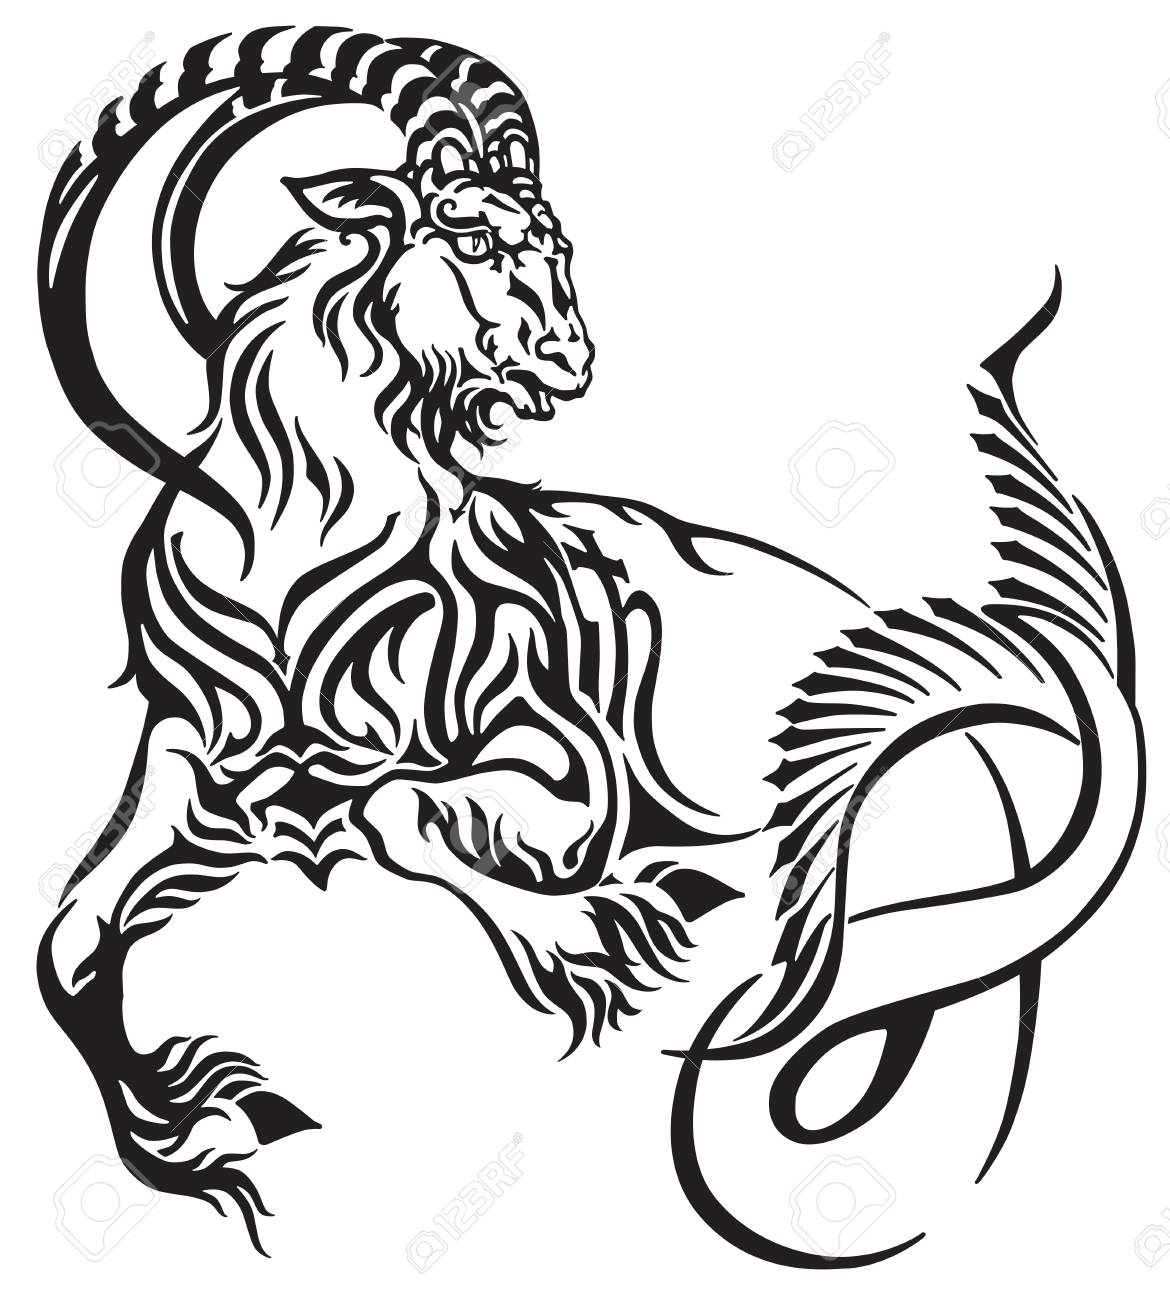 5262833f2 Capricorn zodiac sign. Tribal tattoo style mythological creature.  Astrological sea goat including symbol of